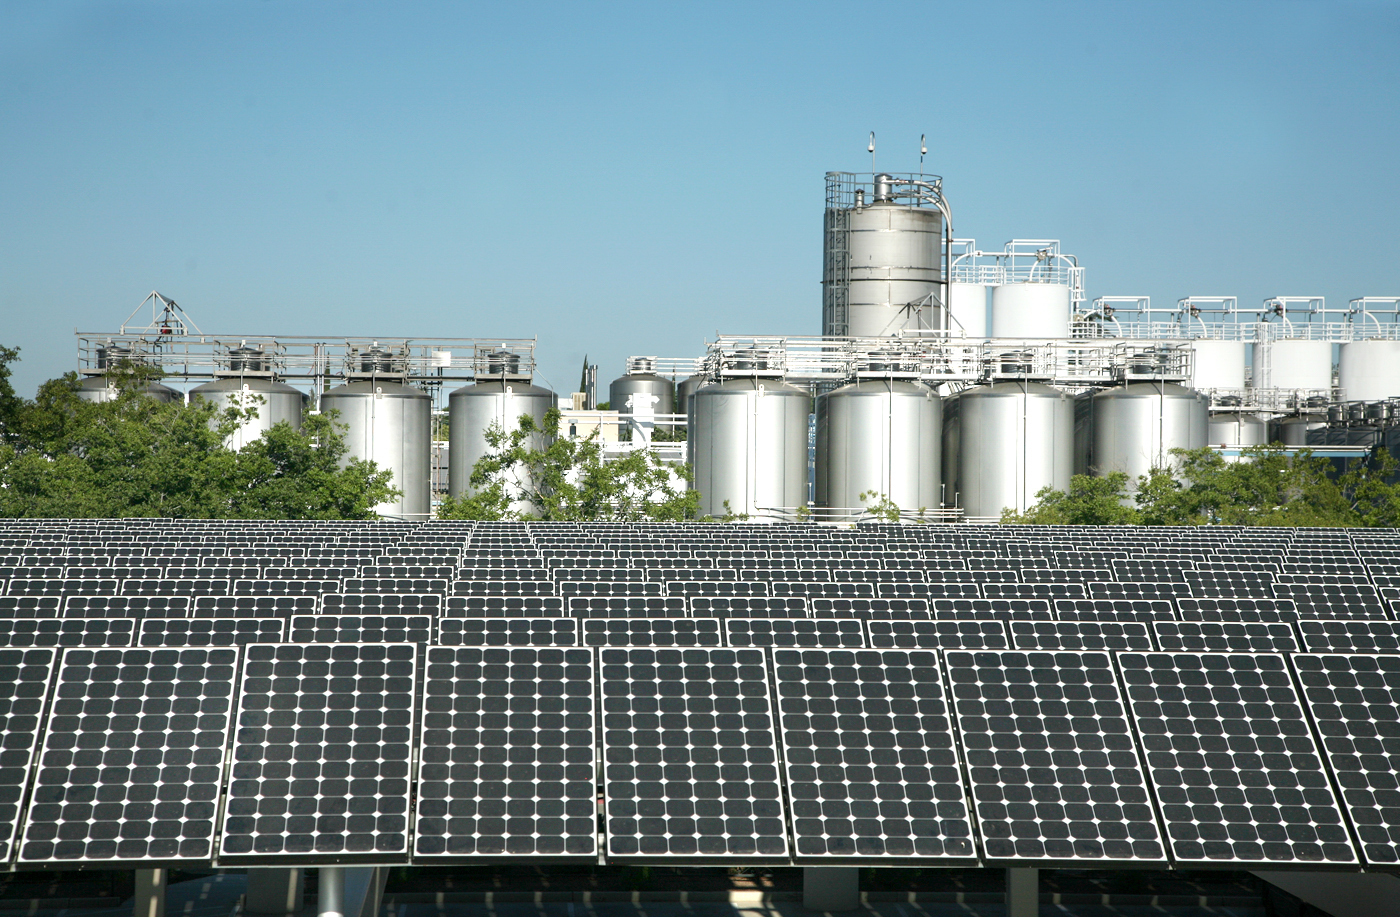 Part of the solar array that covers much Sierra Nevada's brewery in Chico, Calif. The more than 10,500 panels that span the equivalent of 3.5 football fields supply about 20 percent of the brewery's electricity. Courtesy of Sierra Nevada Brewing Co